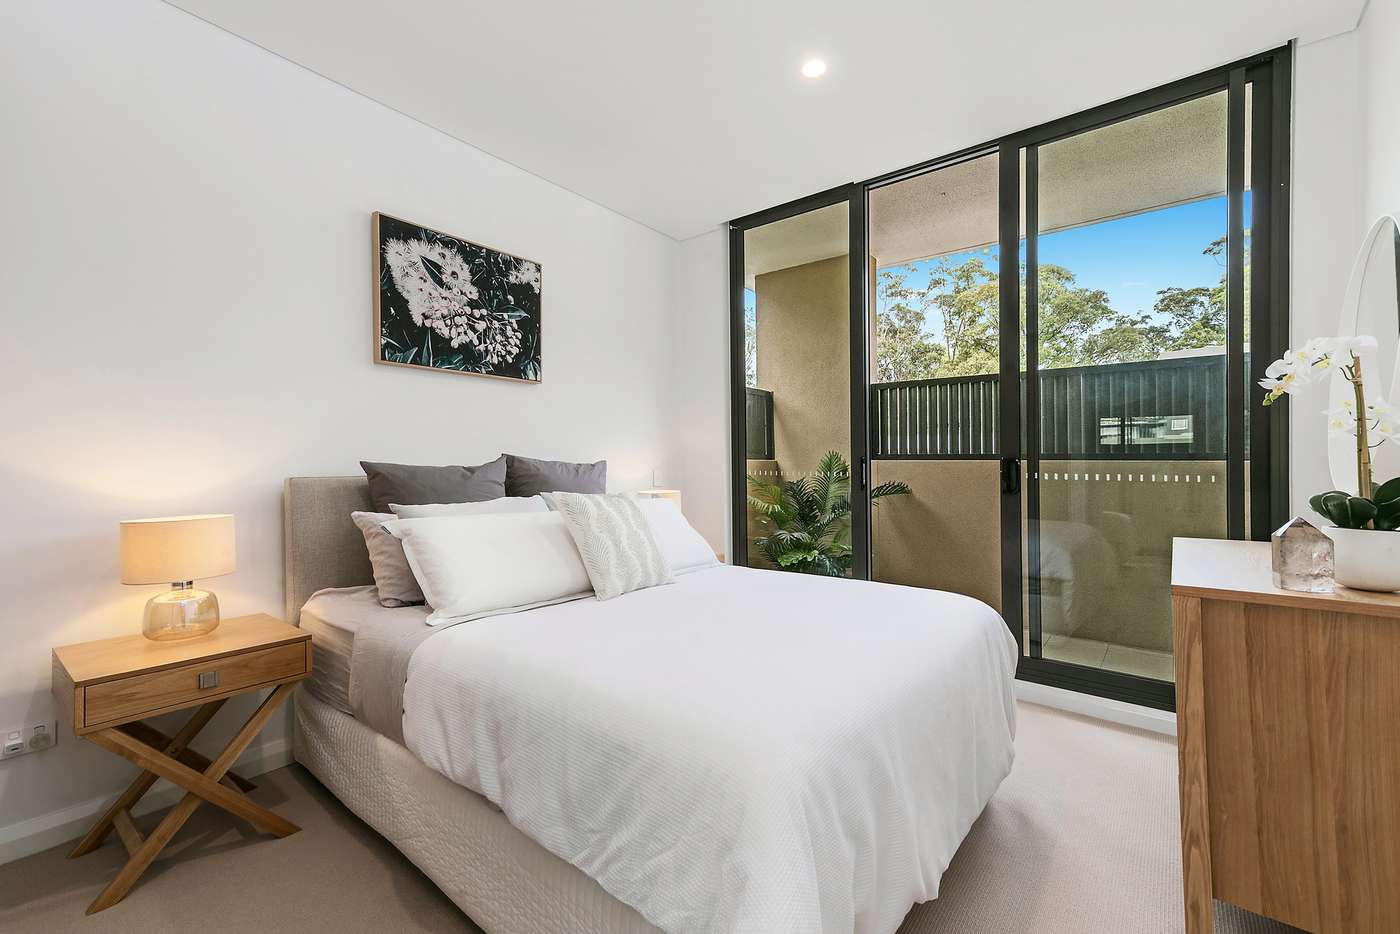 Fifth view of Homely apartment listing, 528/1454 Pacific Highway, Turramurra NSW 2074